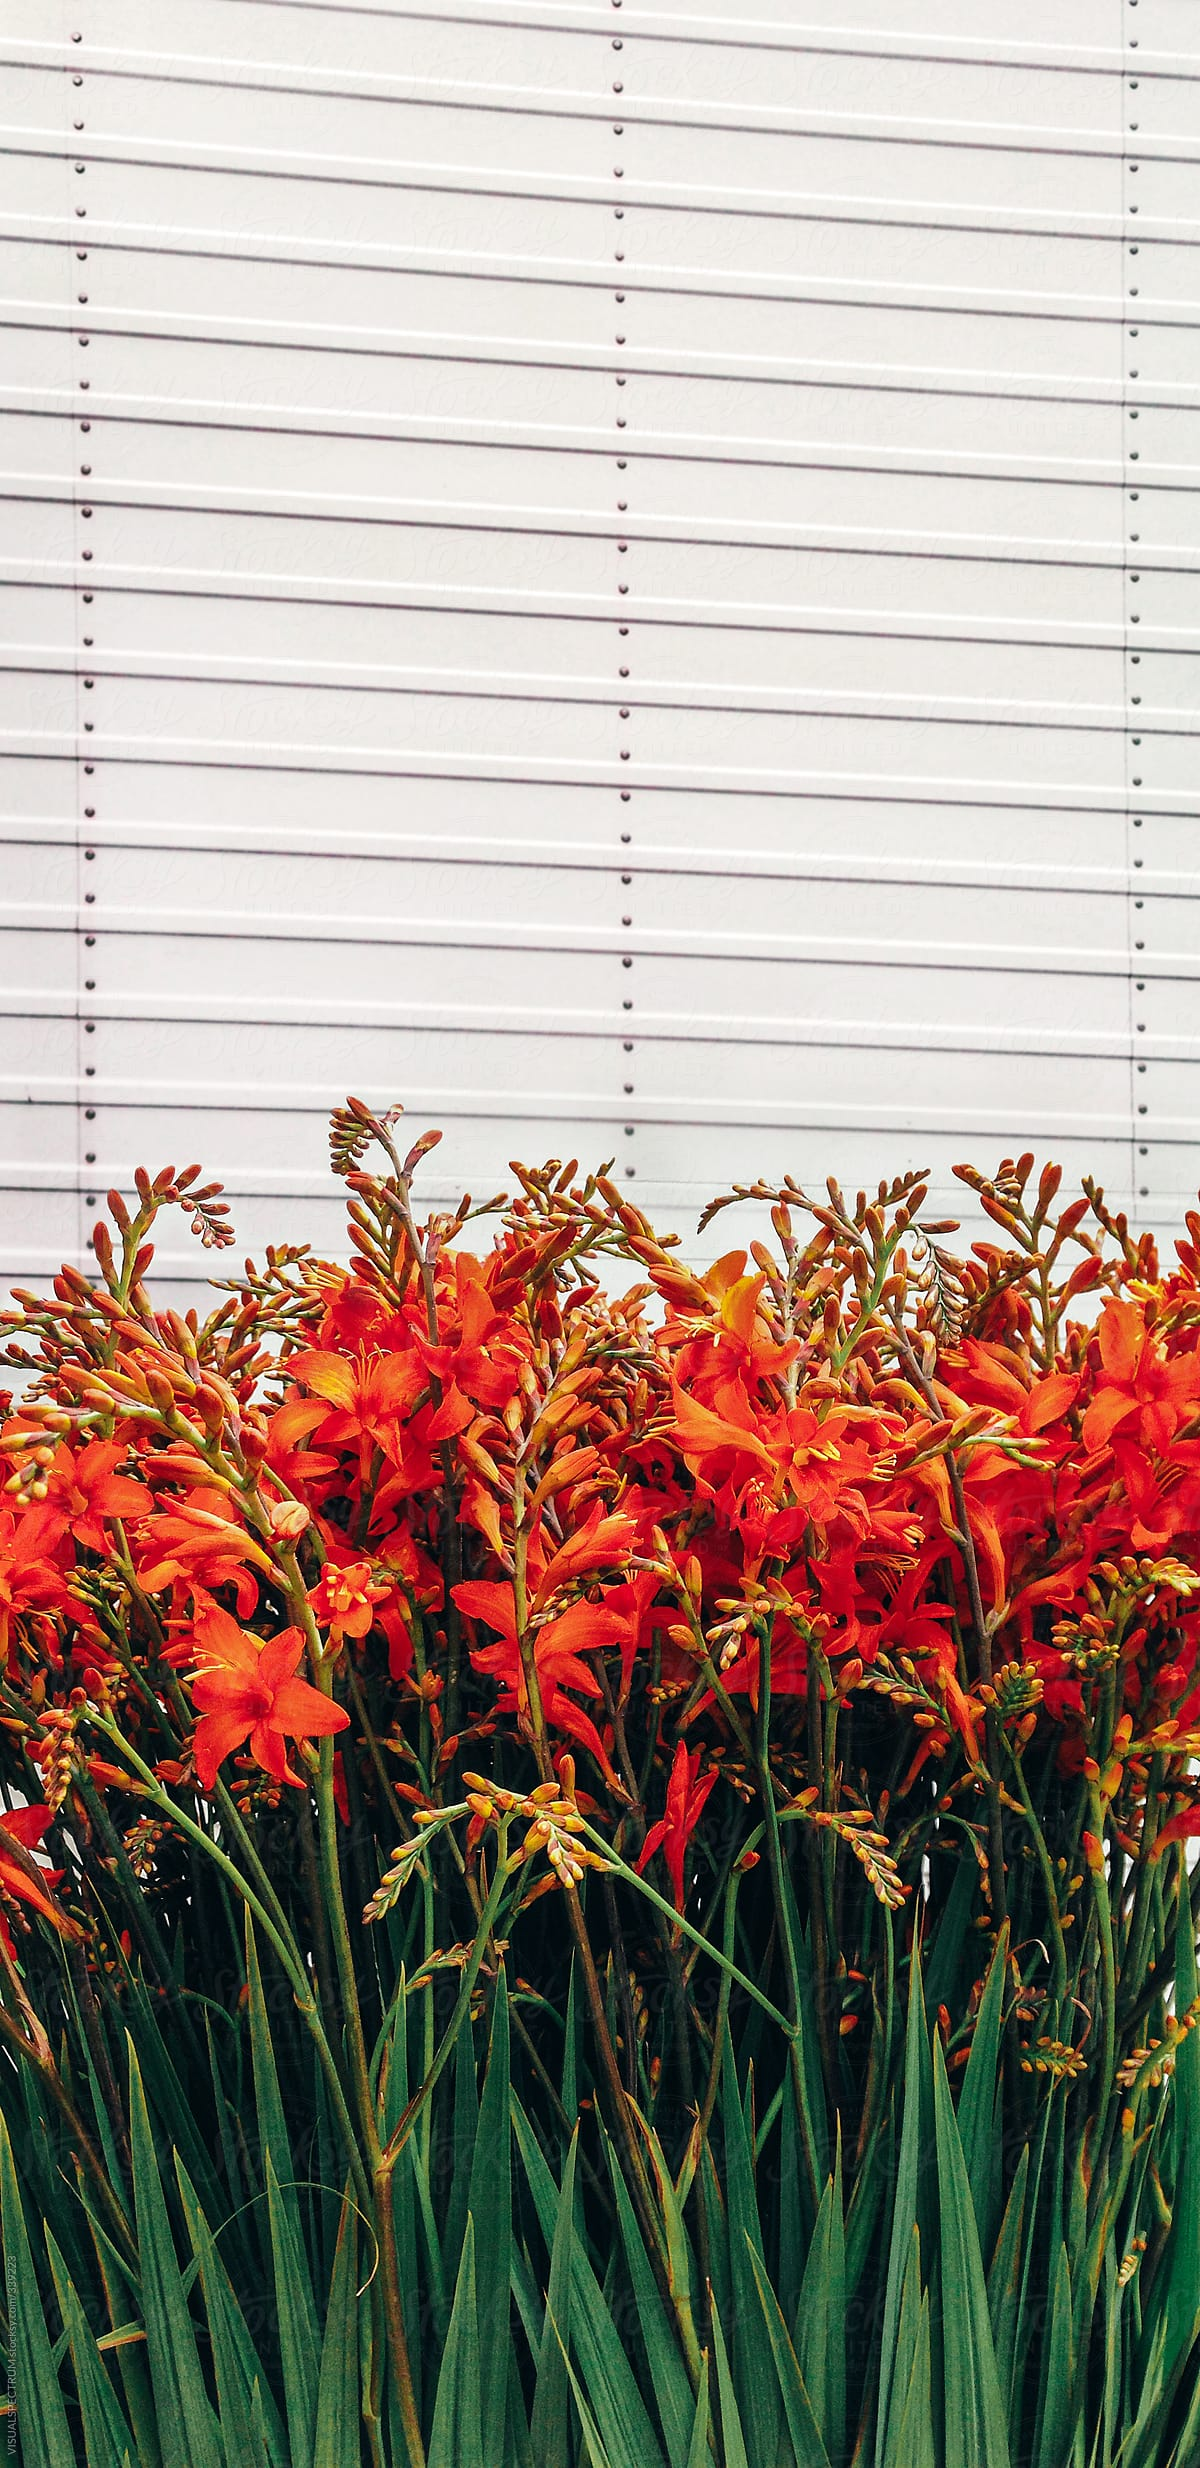 Red lily flowers stocksy united red lily flowers by visualspectrum for stocksy united izmirmasajfo